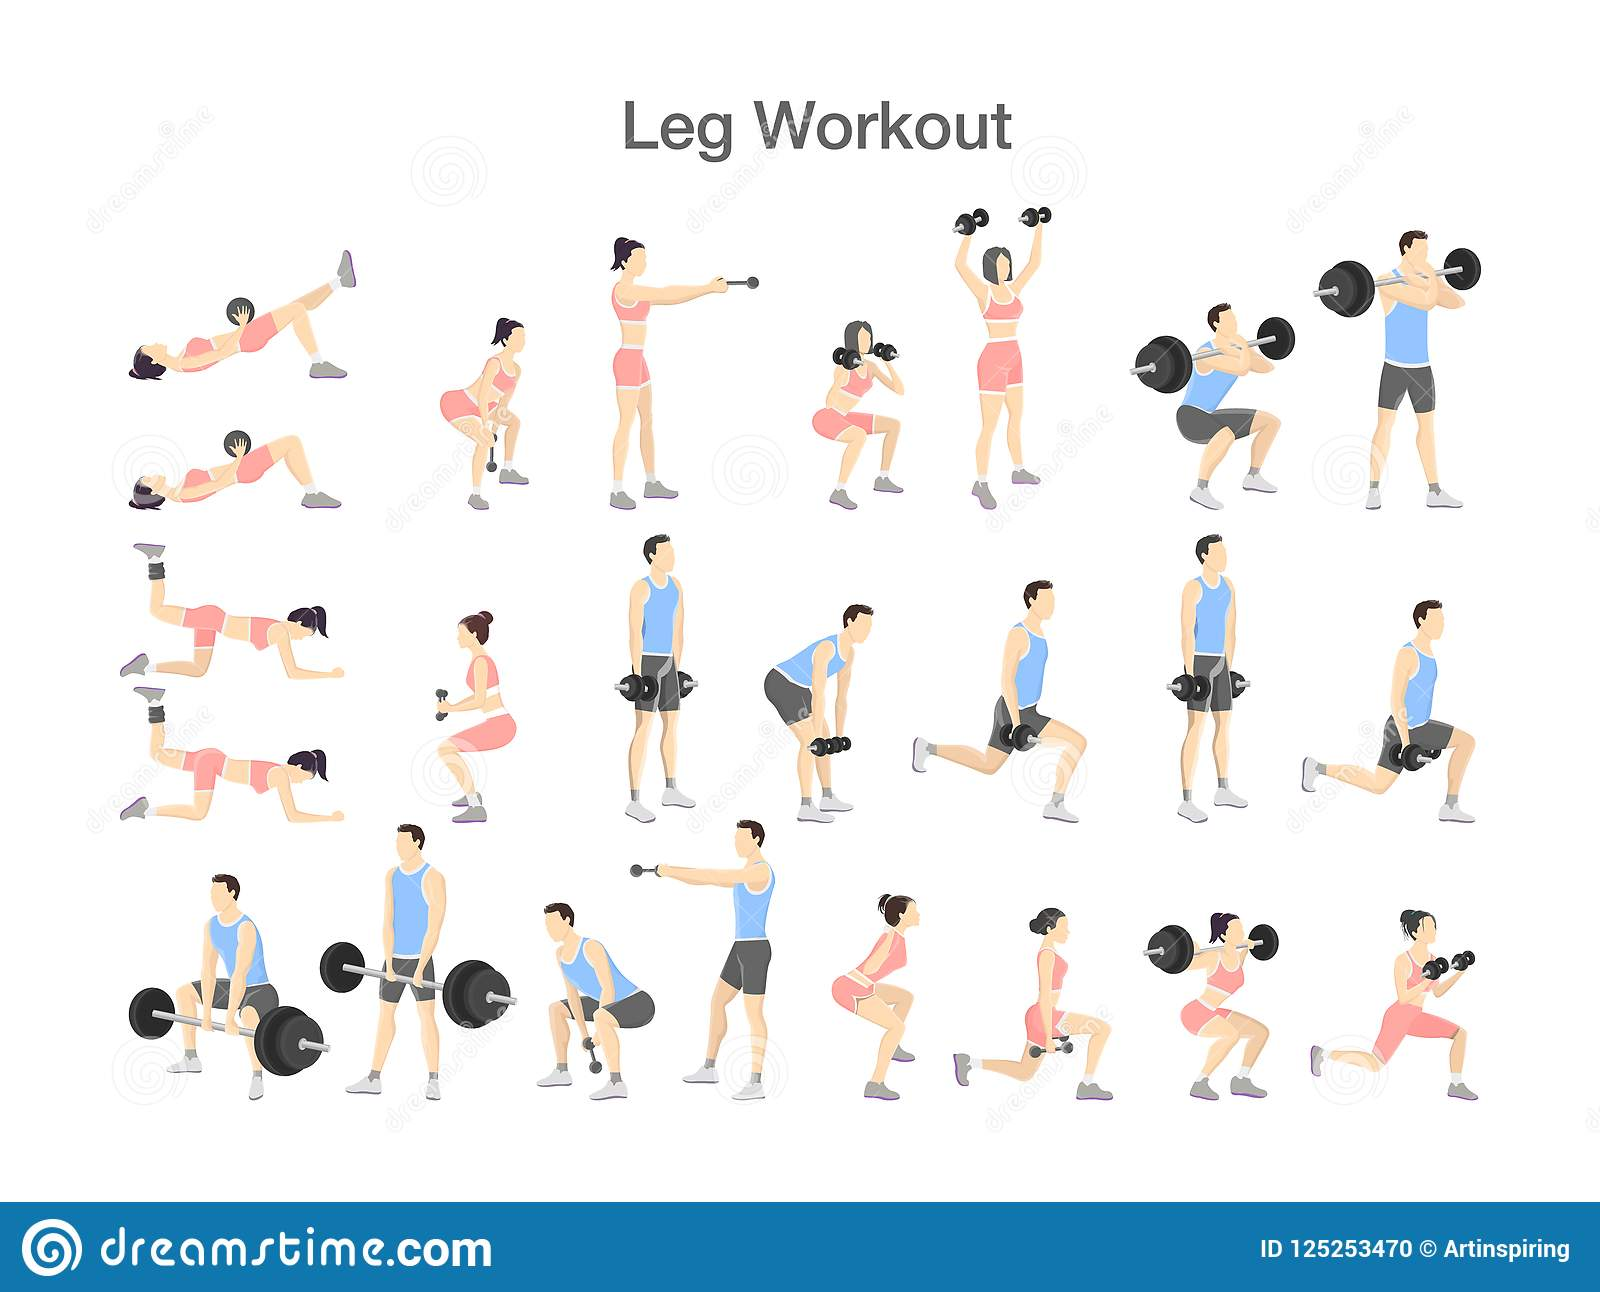 Leg Workout Set With Dumbbell And Barbell Stock Vector Illustration Of Activity Bench 125253470